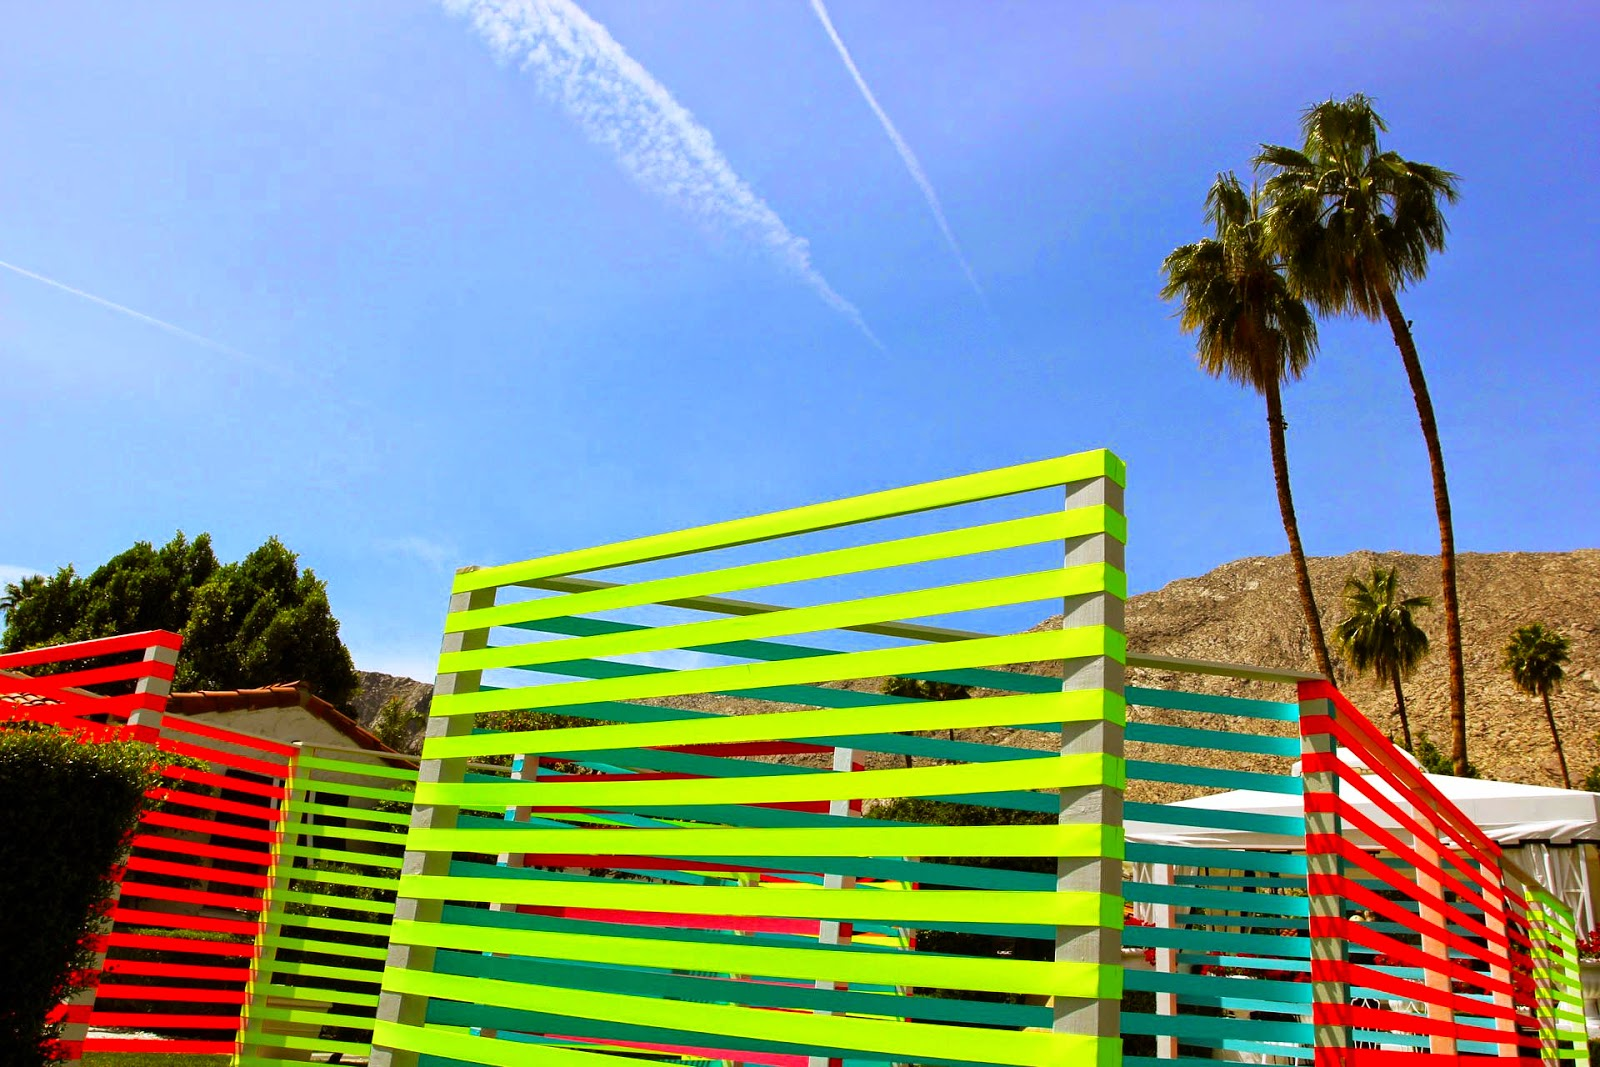 Maser recently spent some time in Palm Springs, California where he was invited by JustKids to work on a new street installation for Coachella '15.